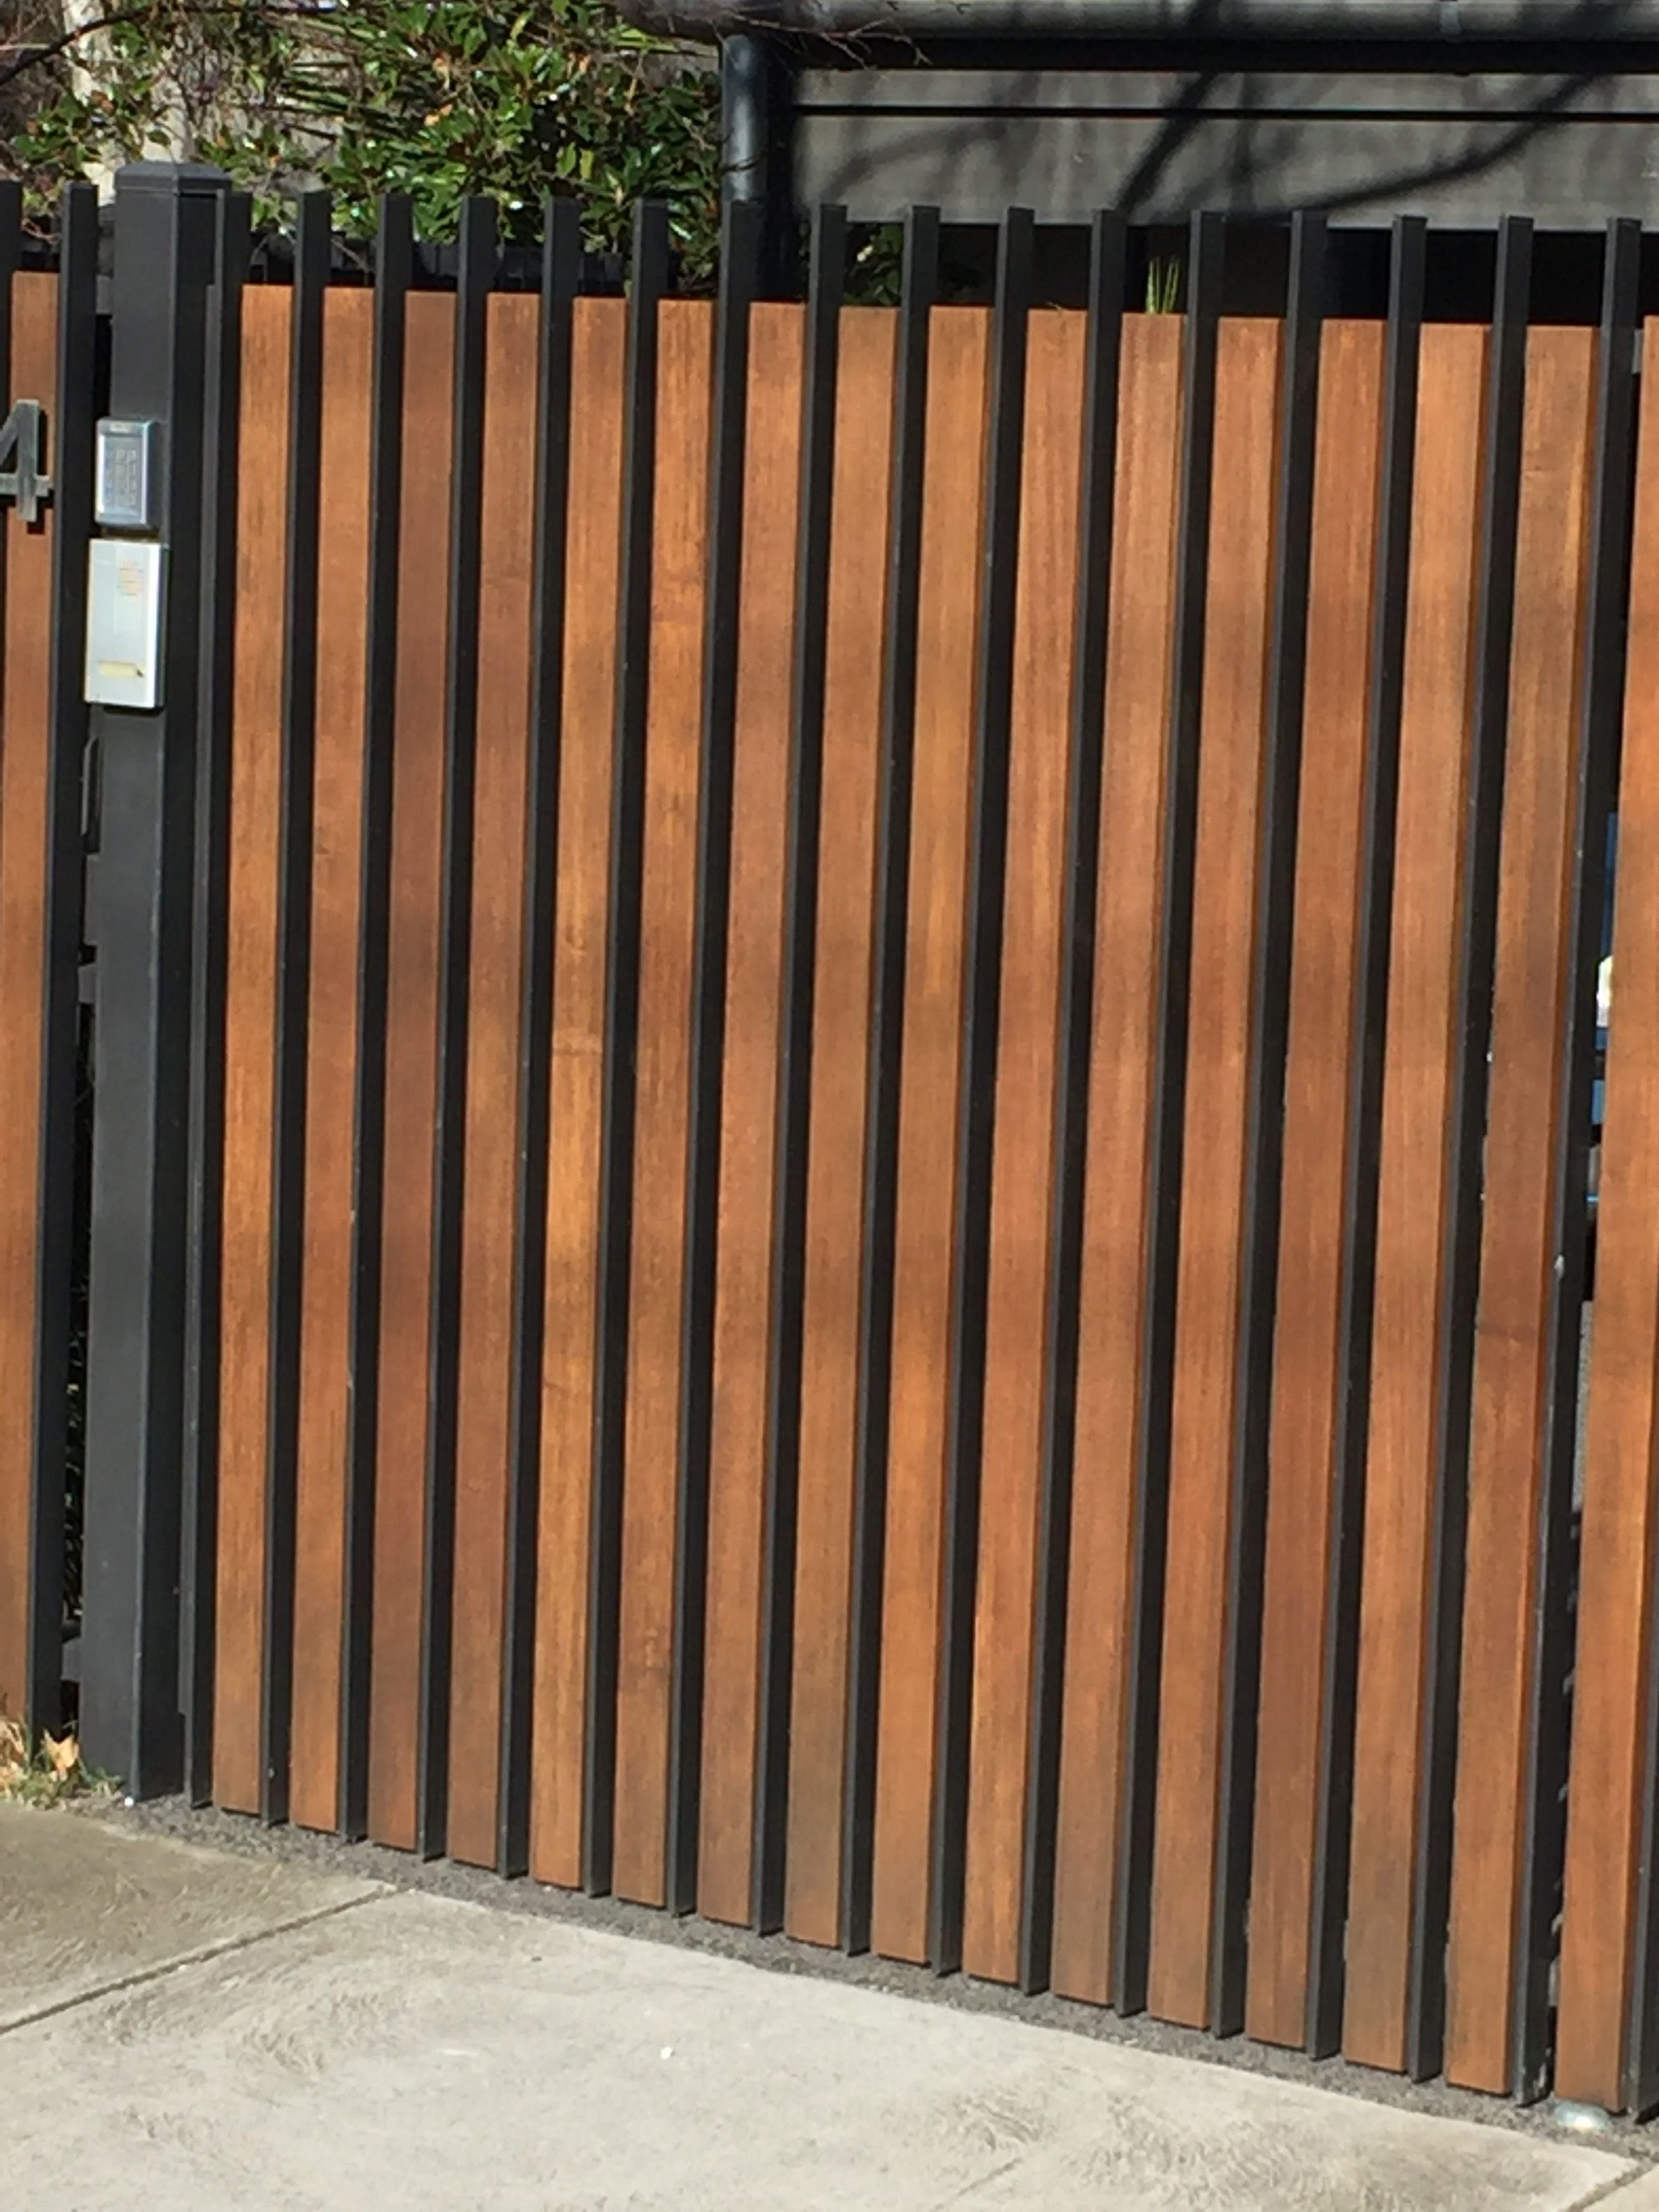 10 Astute Simple Ideas Movable Dog Fence Iron Fence Architectural Salvage Corten Steel Fence Outer Fe Door Gate Design Entrance Gates Design House Gate Design